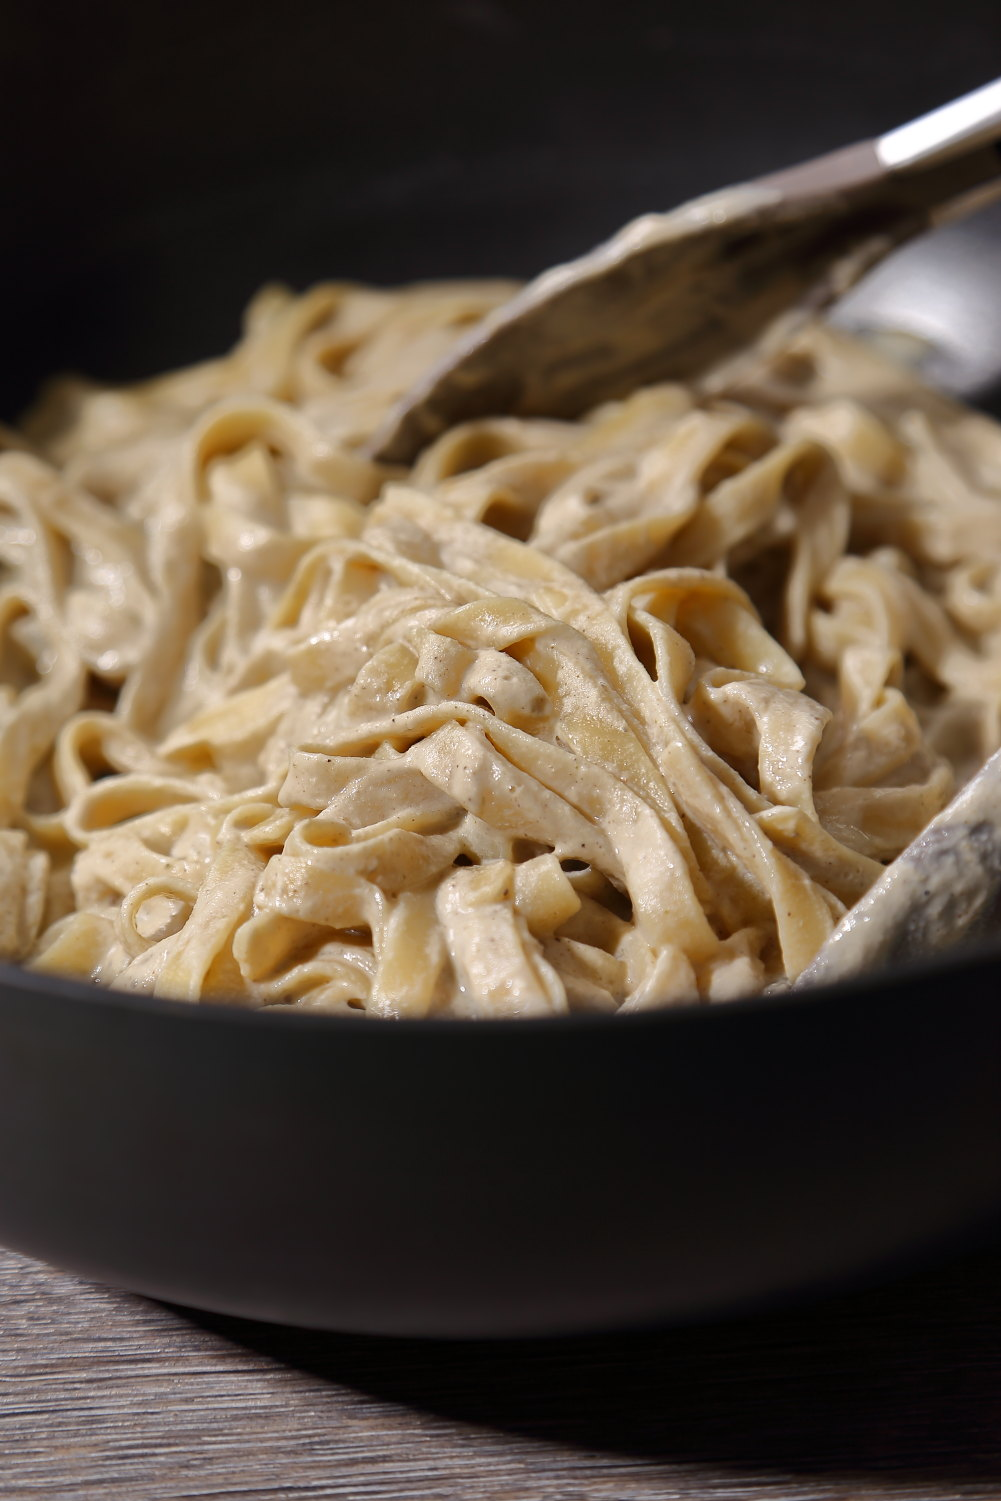 Vegan Alfredo Sauce - a simple recipe for vegan pasta alfredo with tagliatelle and sunflower seed cream